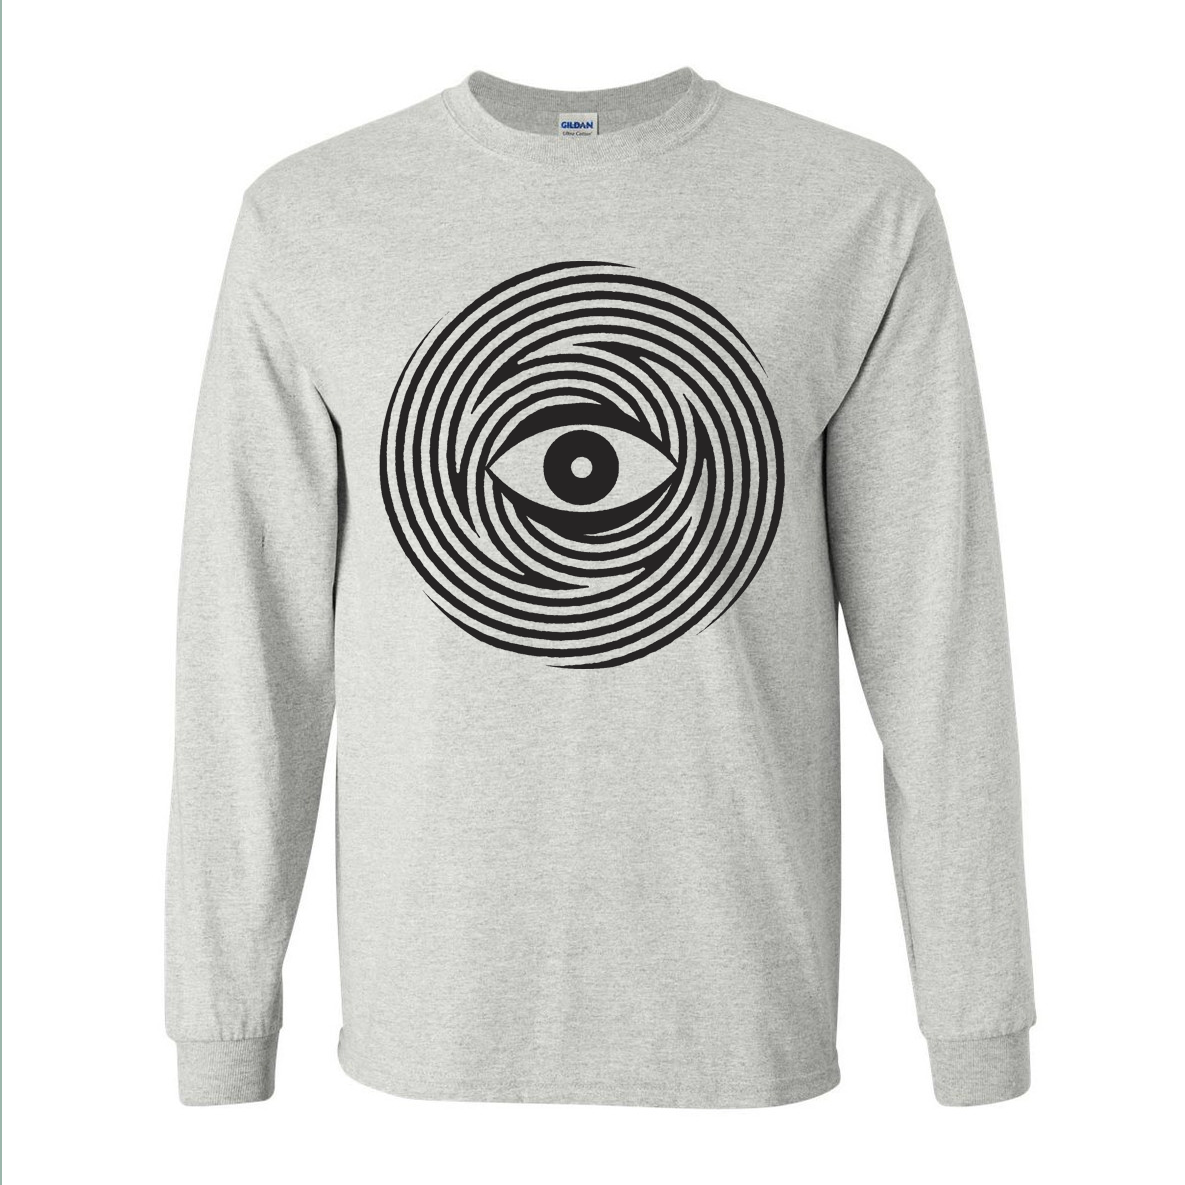 The Physics House Band - 'HYPNOTIC' Long Sleeve T-Shirt